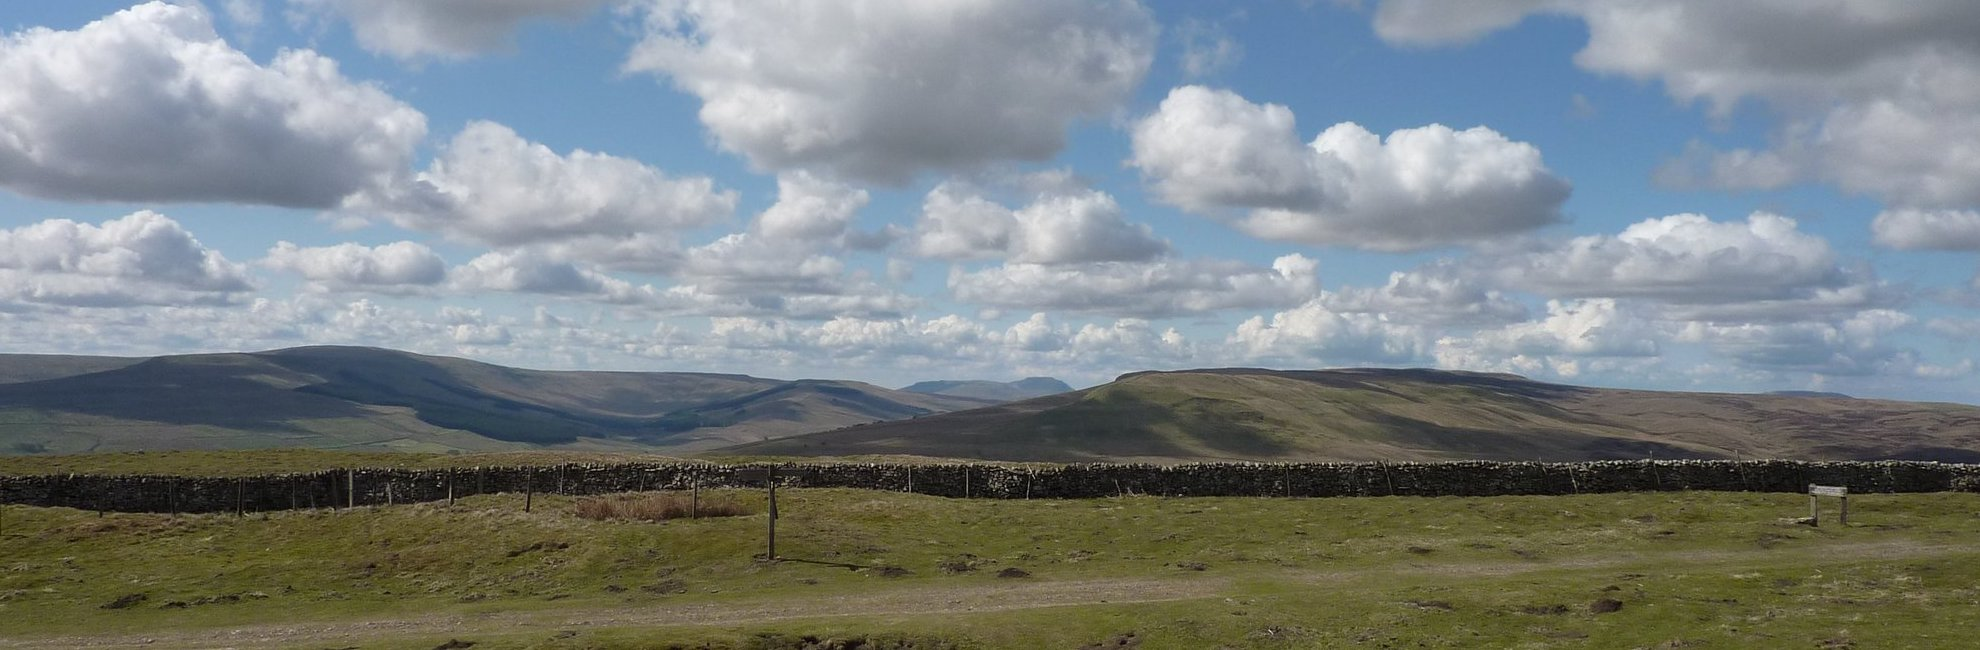 Looking across to Ingleborough from the path up Great Shunner Fell